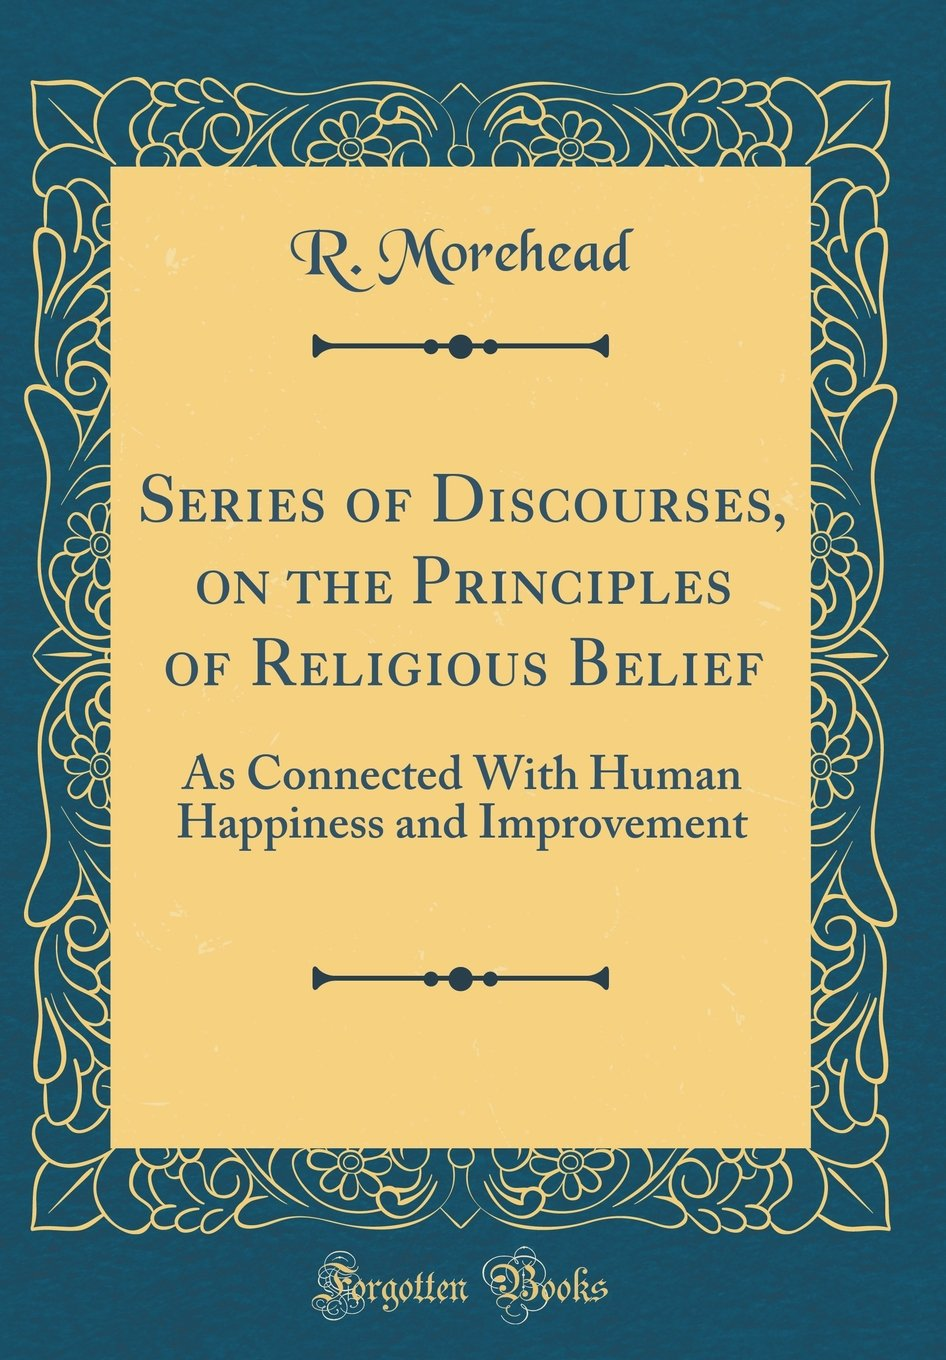 Read Online Series of Discourses, on the Principles of Religious Belief: As Connected With Human Happiness and Improvement (Classic Reprint) pdf epub